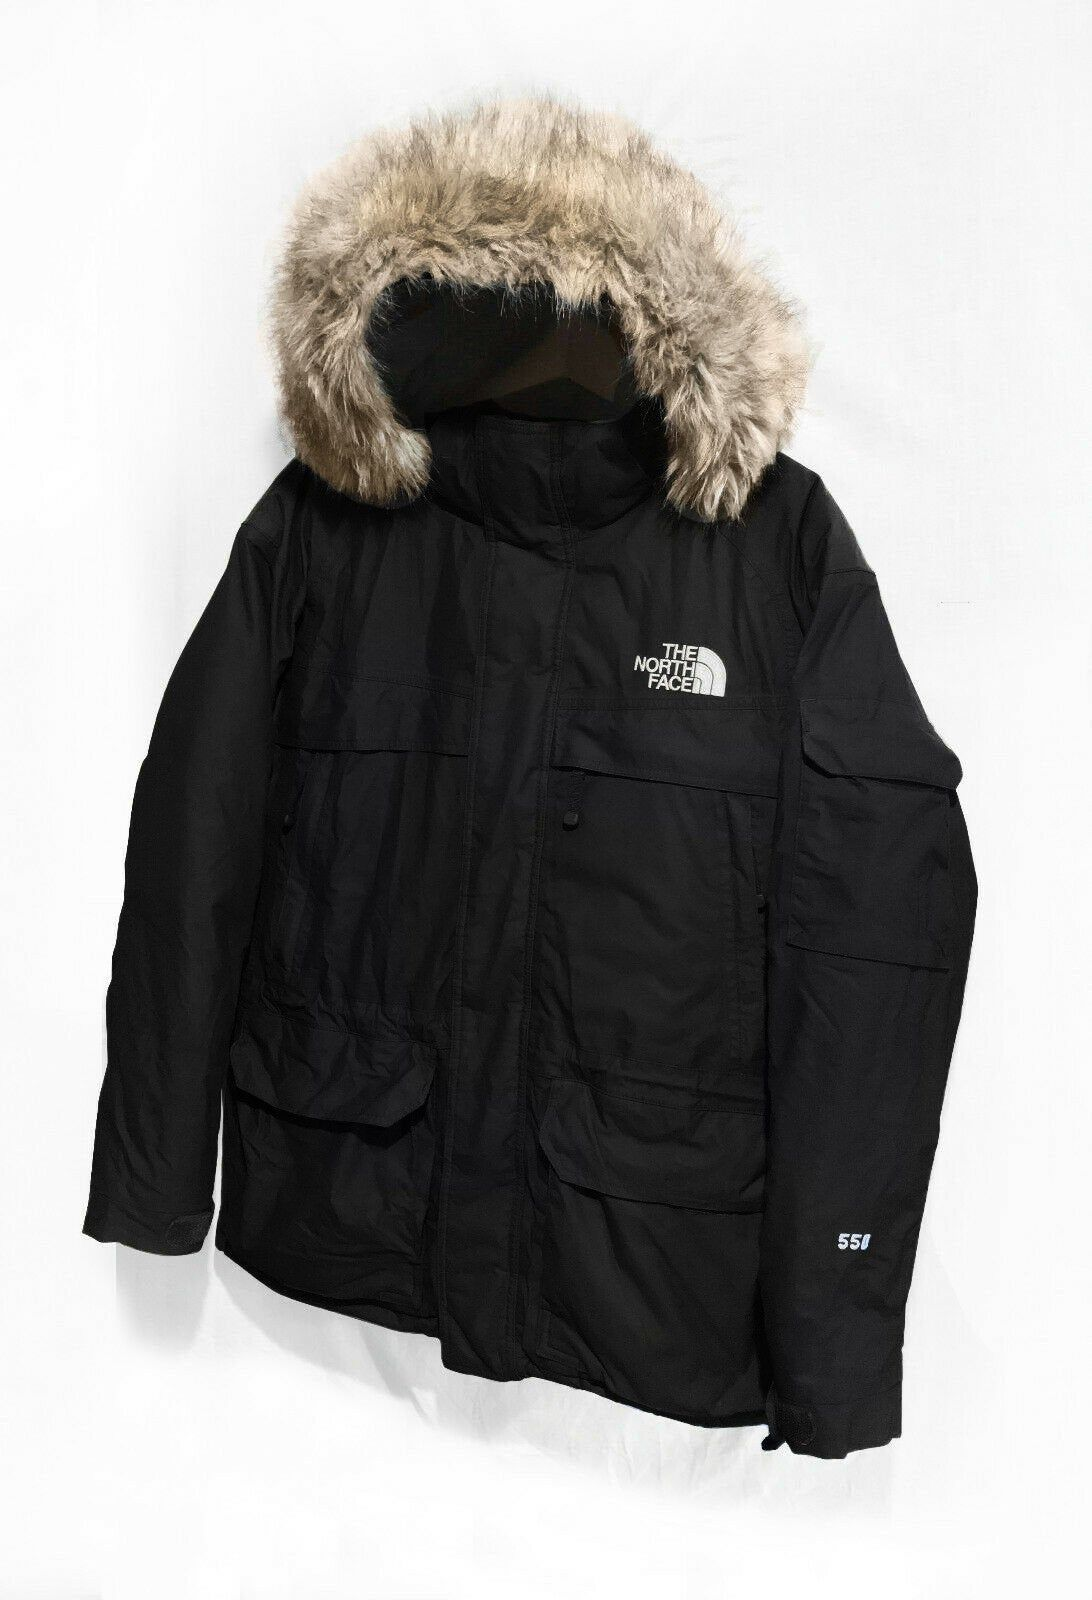 Vintage The North Face 700 Down Nuptse Puffer Jacket Blue And Etsy Winter Jacket North Face North Face Mens North Face 700 [ 1600 x 1092 Pixel ]